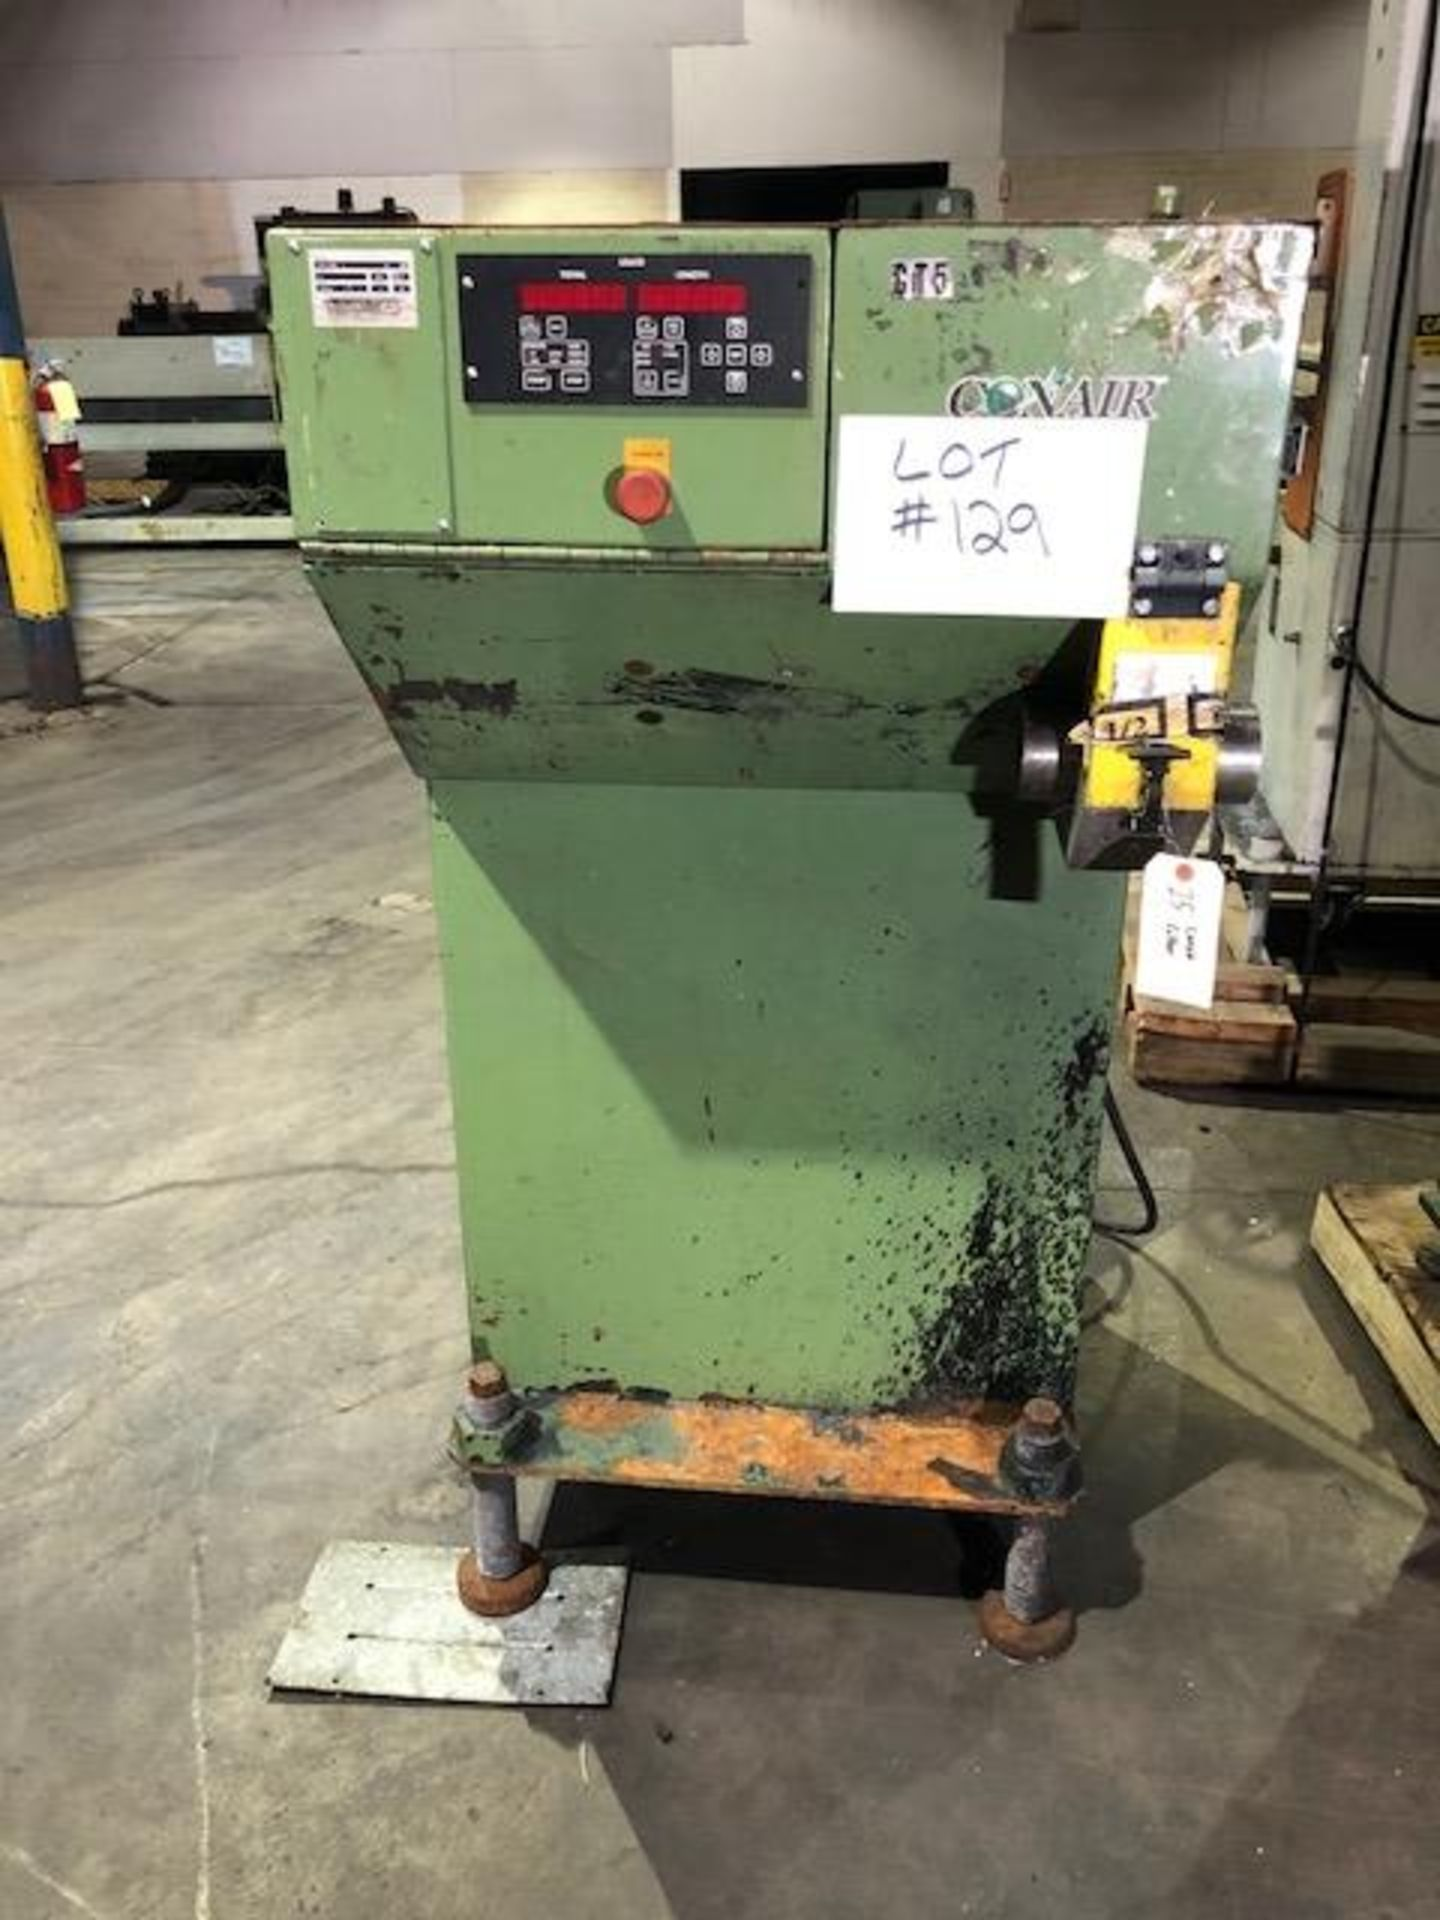 Lot 129 - Conair Cutter